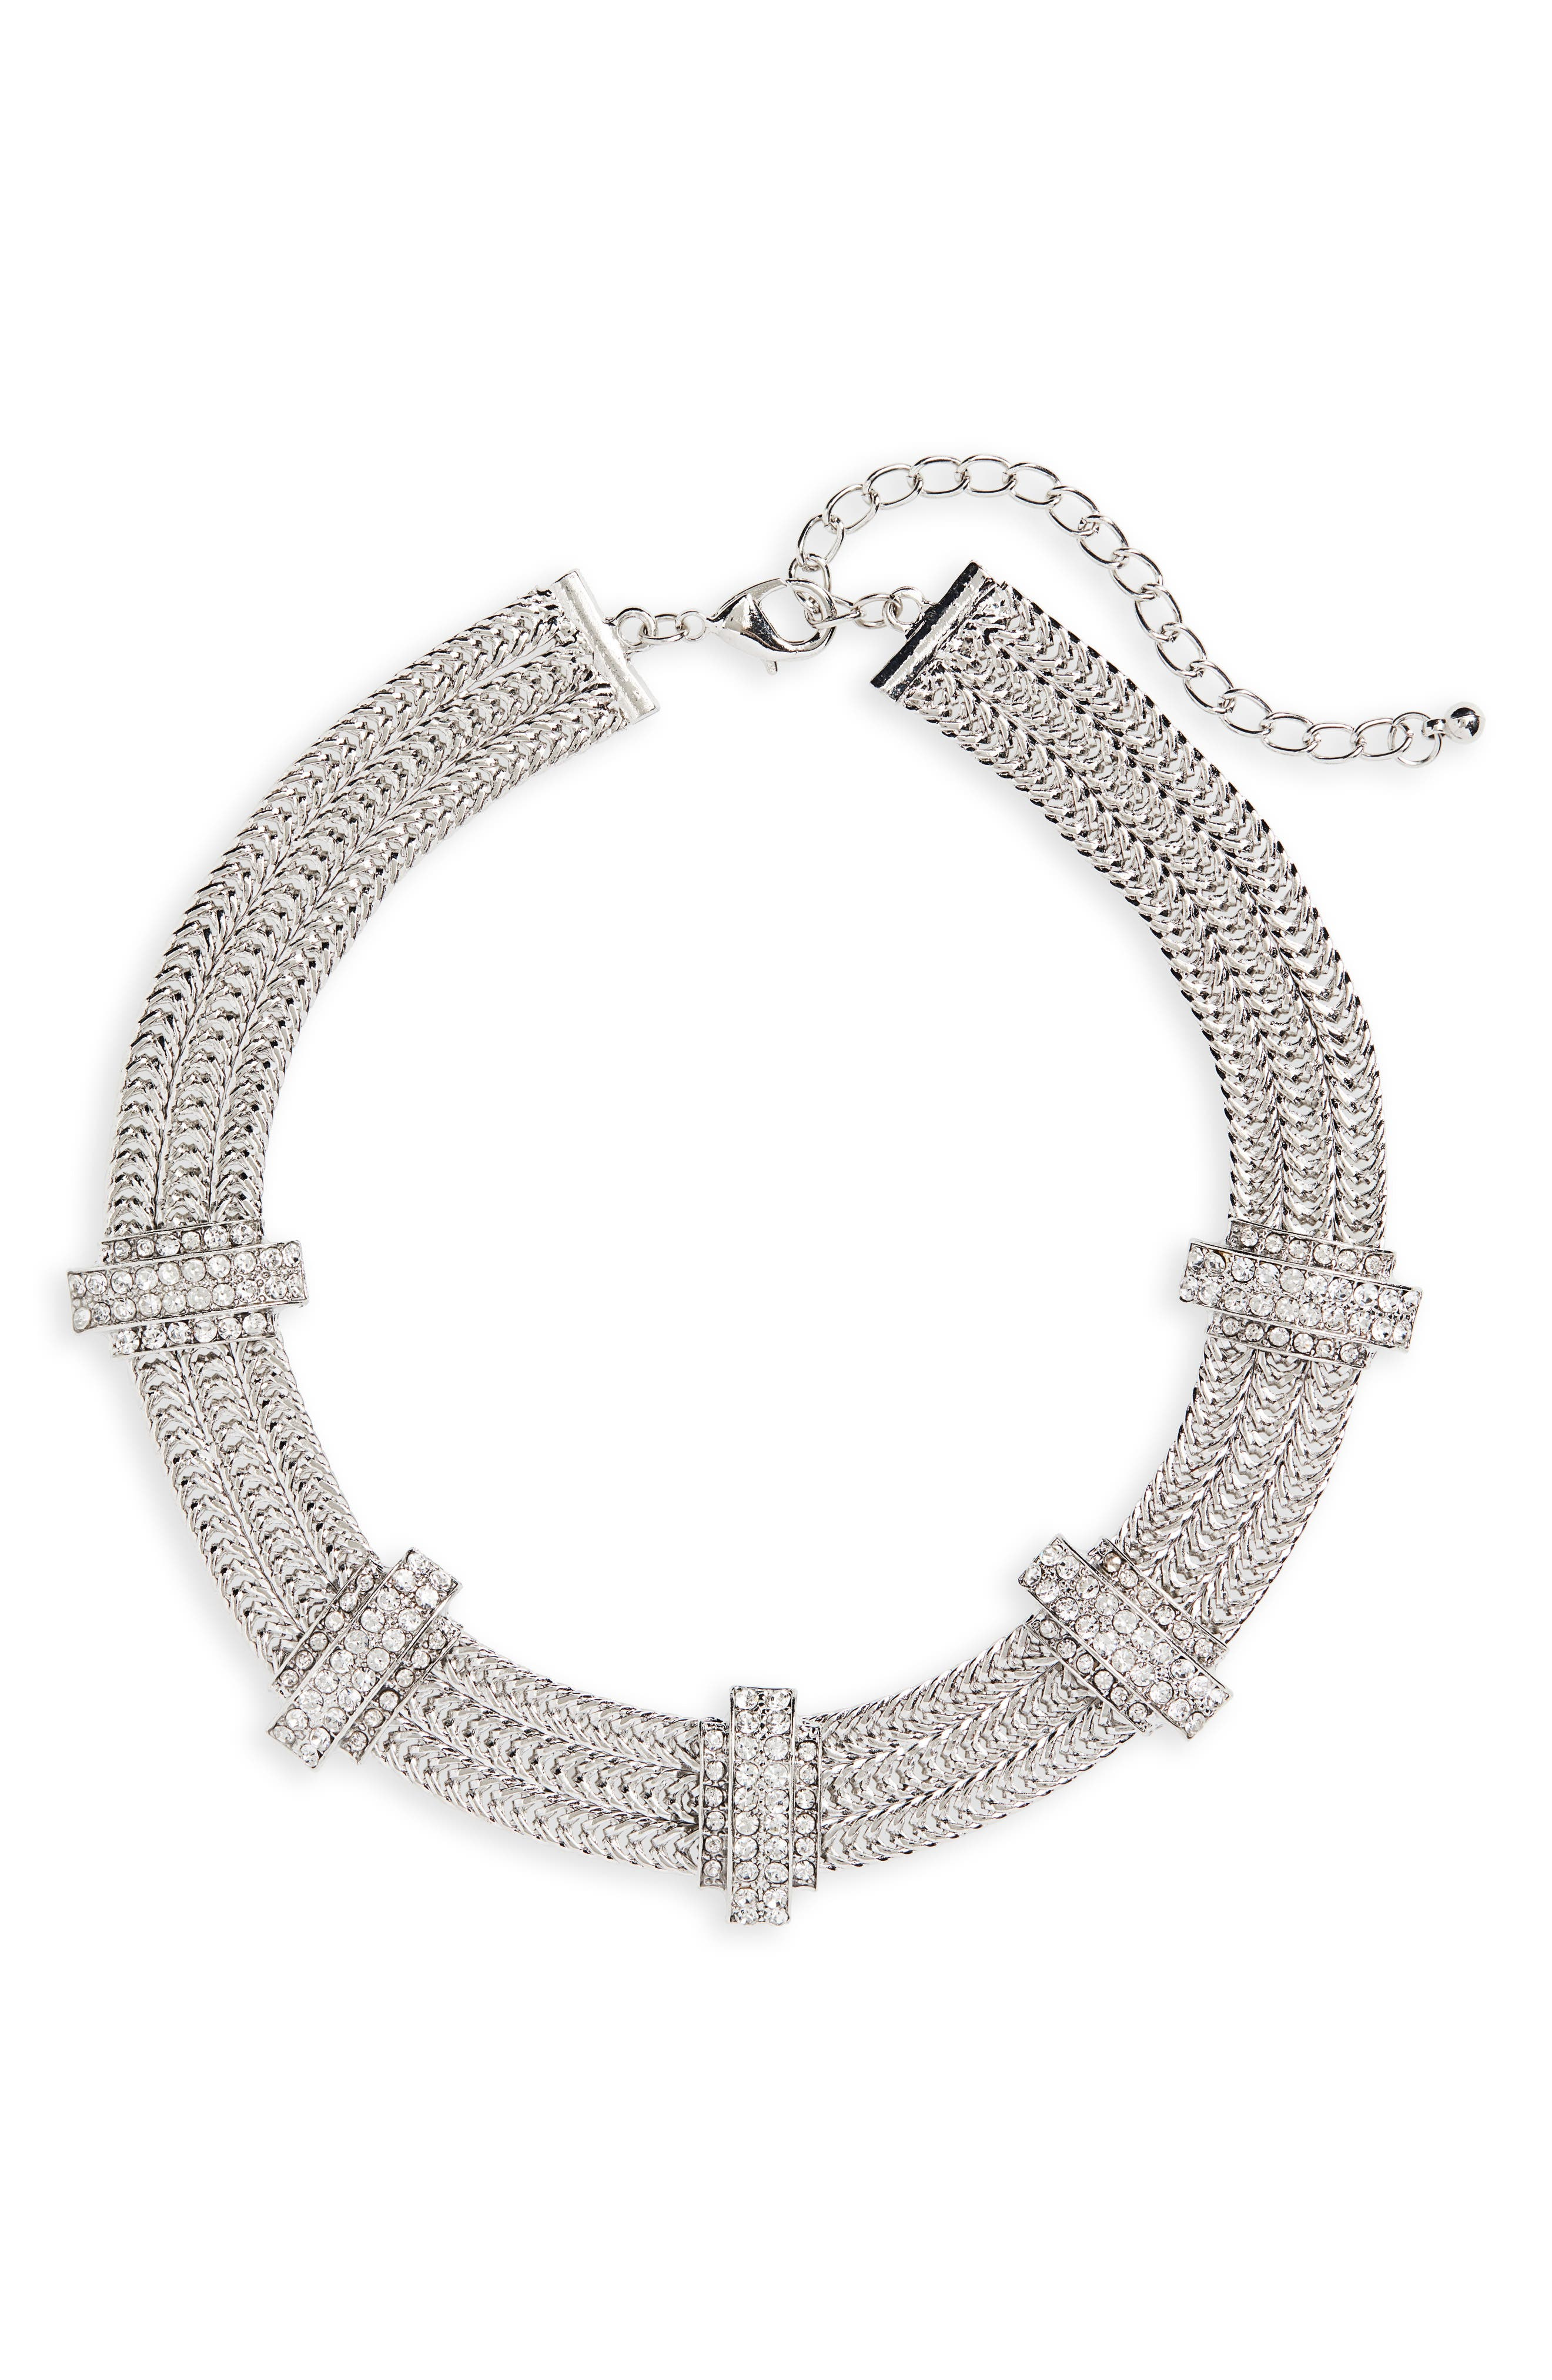 Crystal Statement Collar Necklace,                         Main,                         color, SILVER/ CRYSTAL